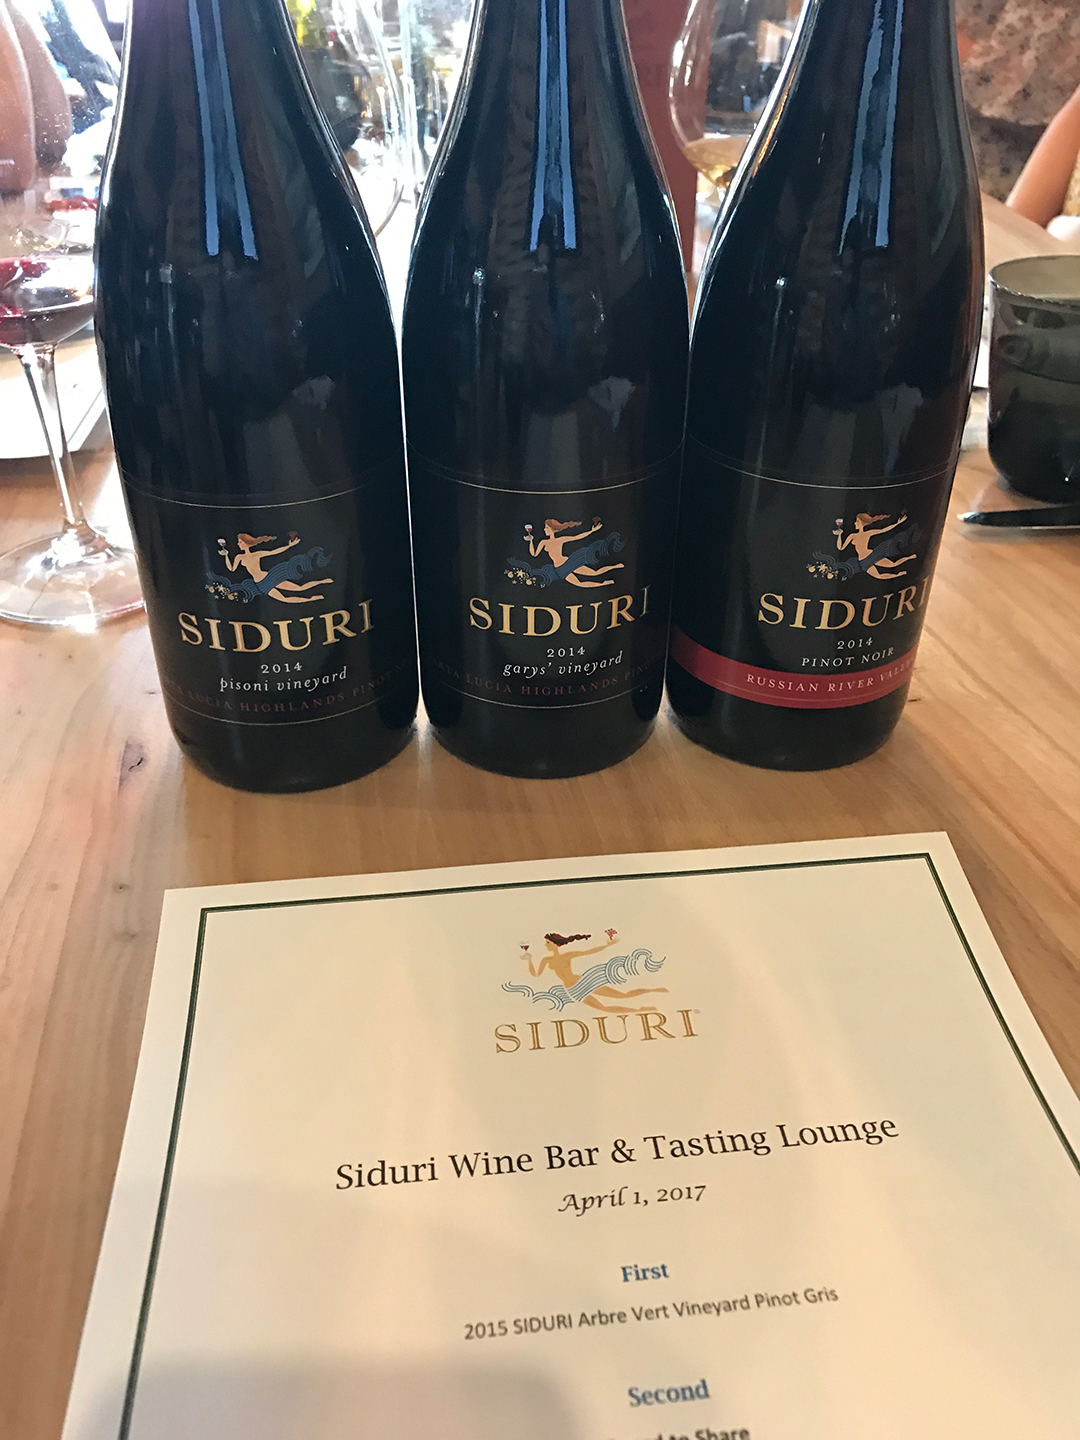 Siduri+Wine+Bar+&+Tasting+Lounge (2).jpeg